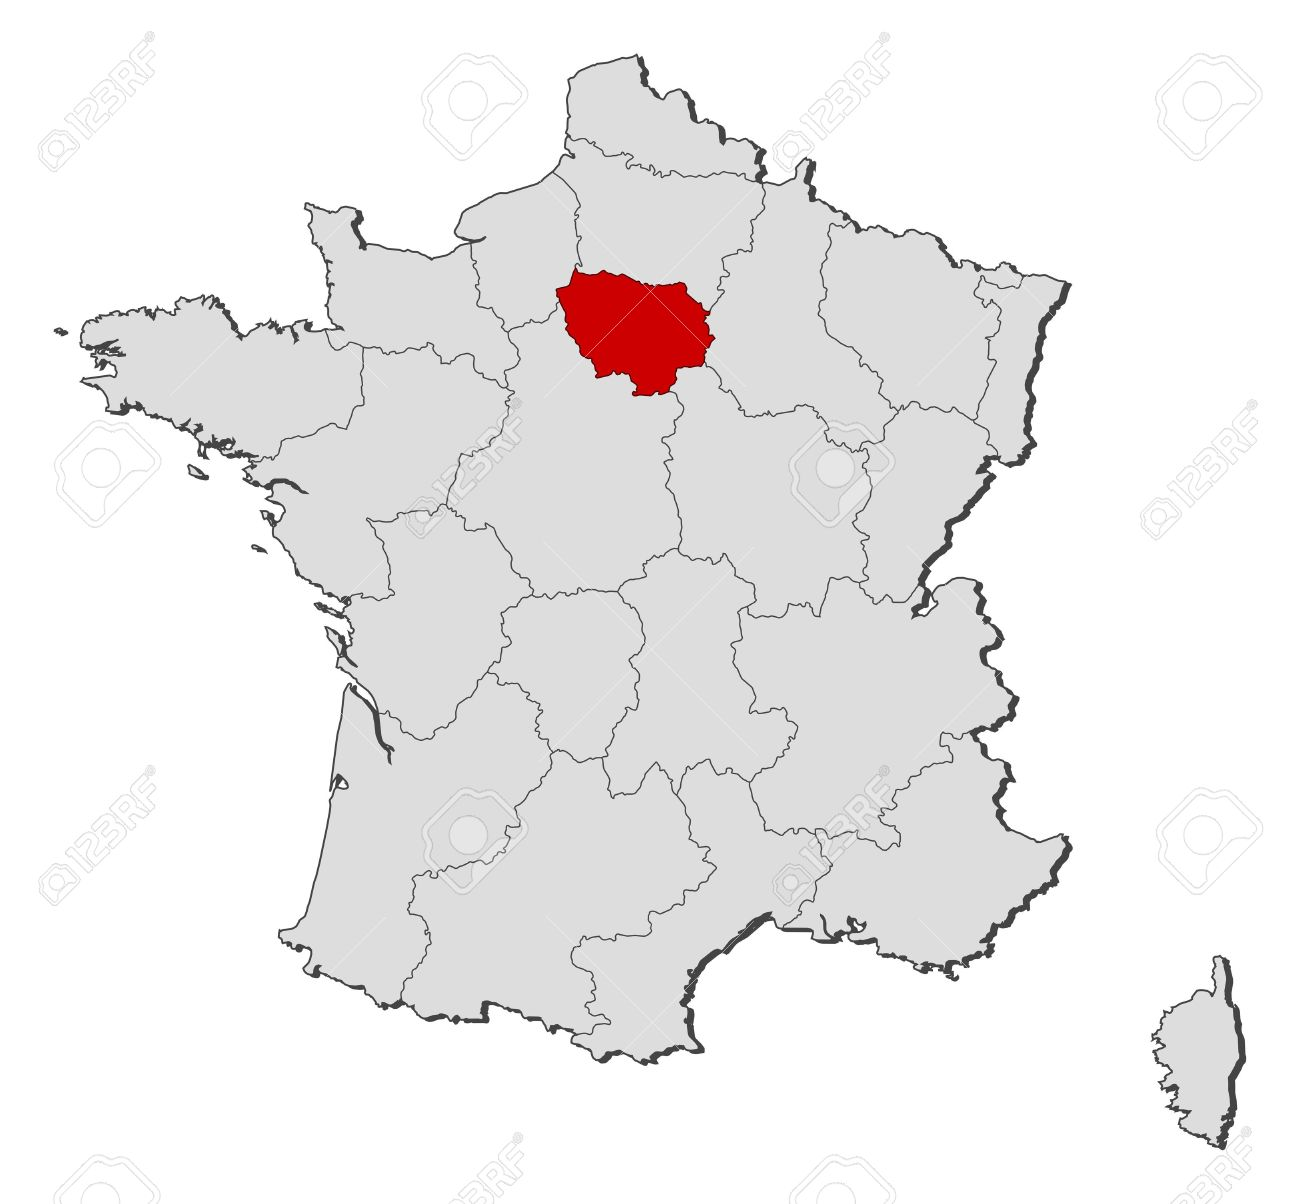 Map Of France With Paris Highlighted.Map Of France With Paris Highlighted Cvflvbp